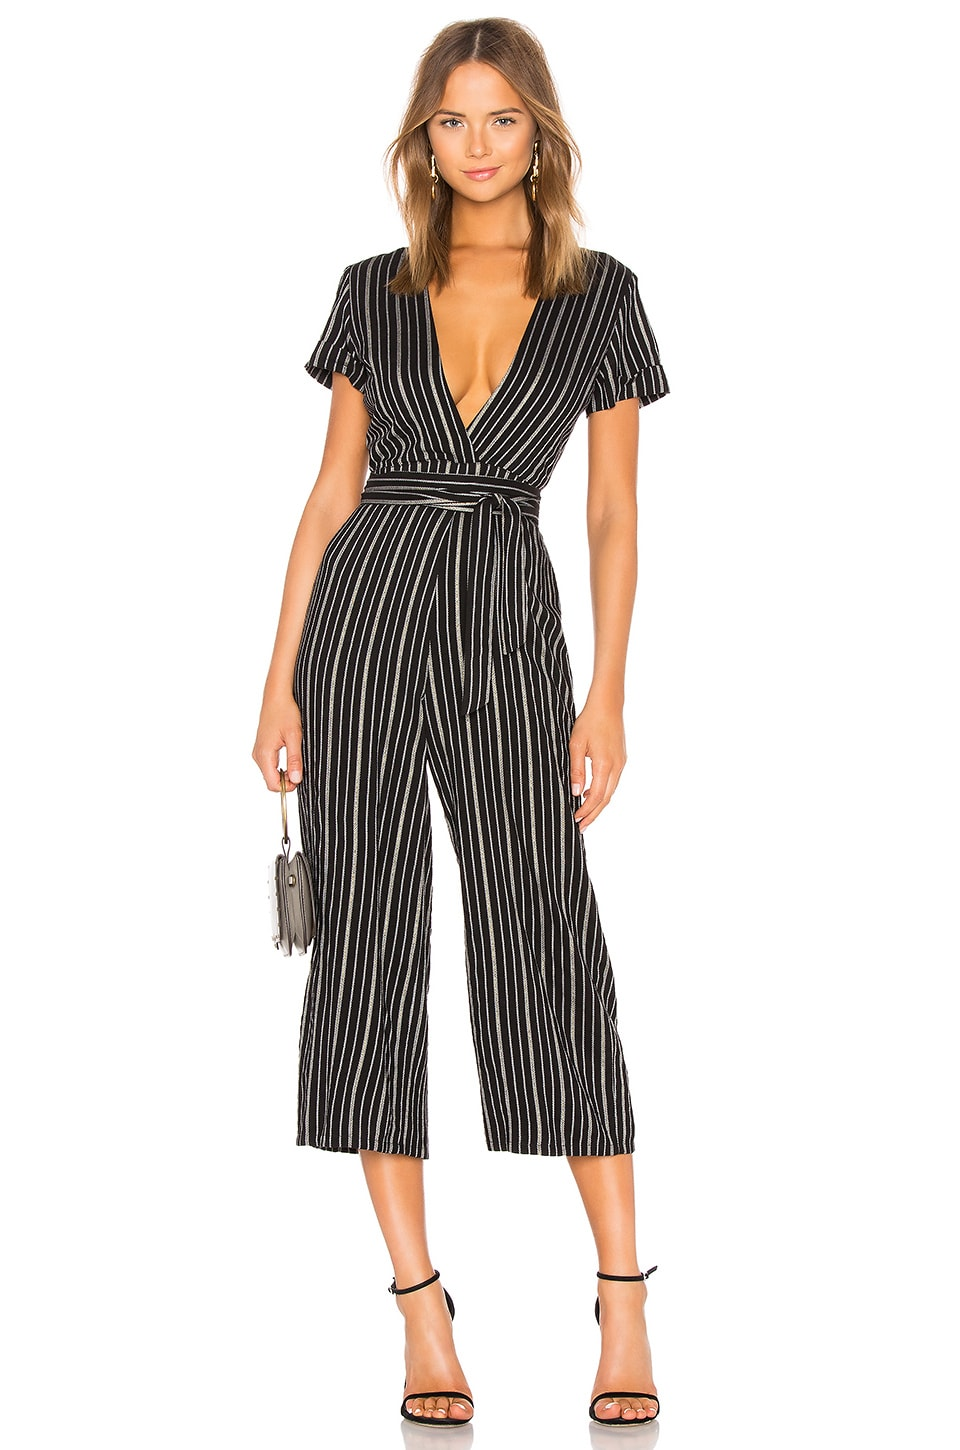 Privacy Please Norwalk Jumpsuit in Black & Gold